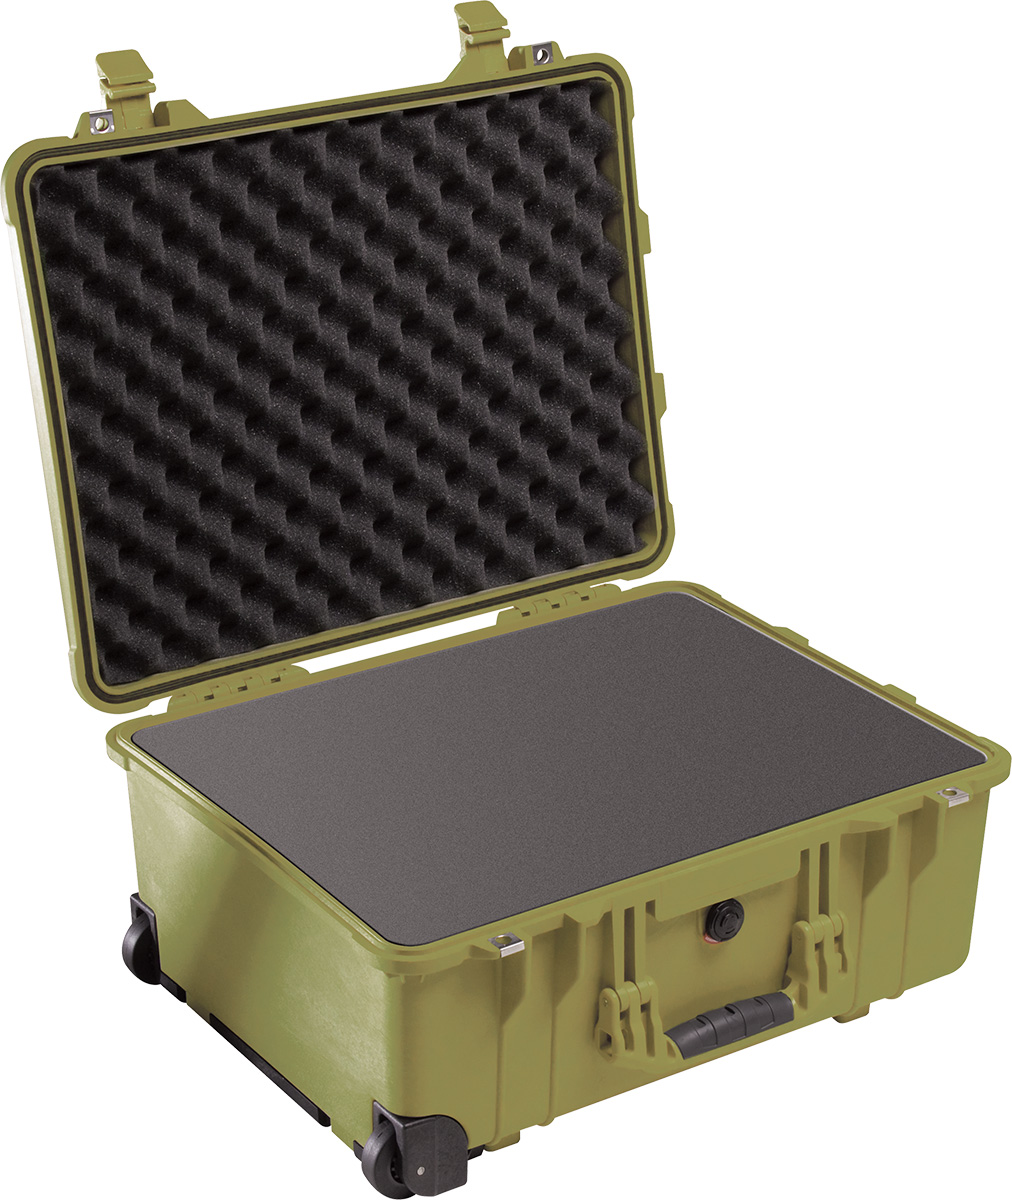 pelican 1560 green protector foam case